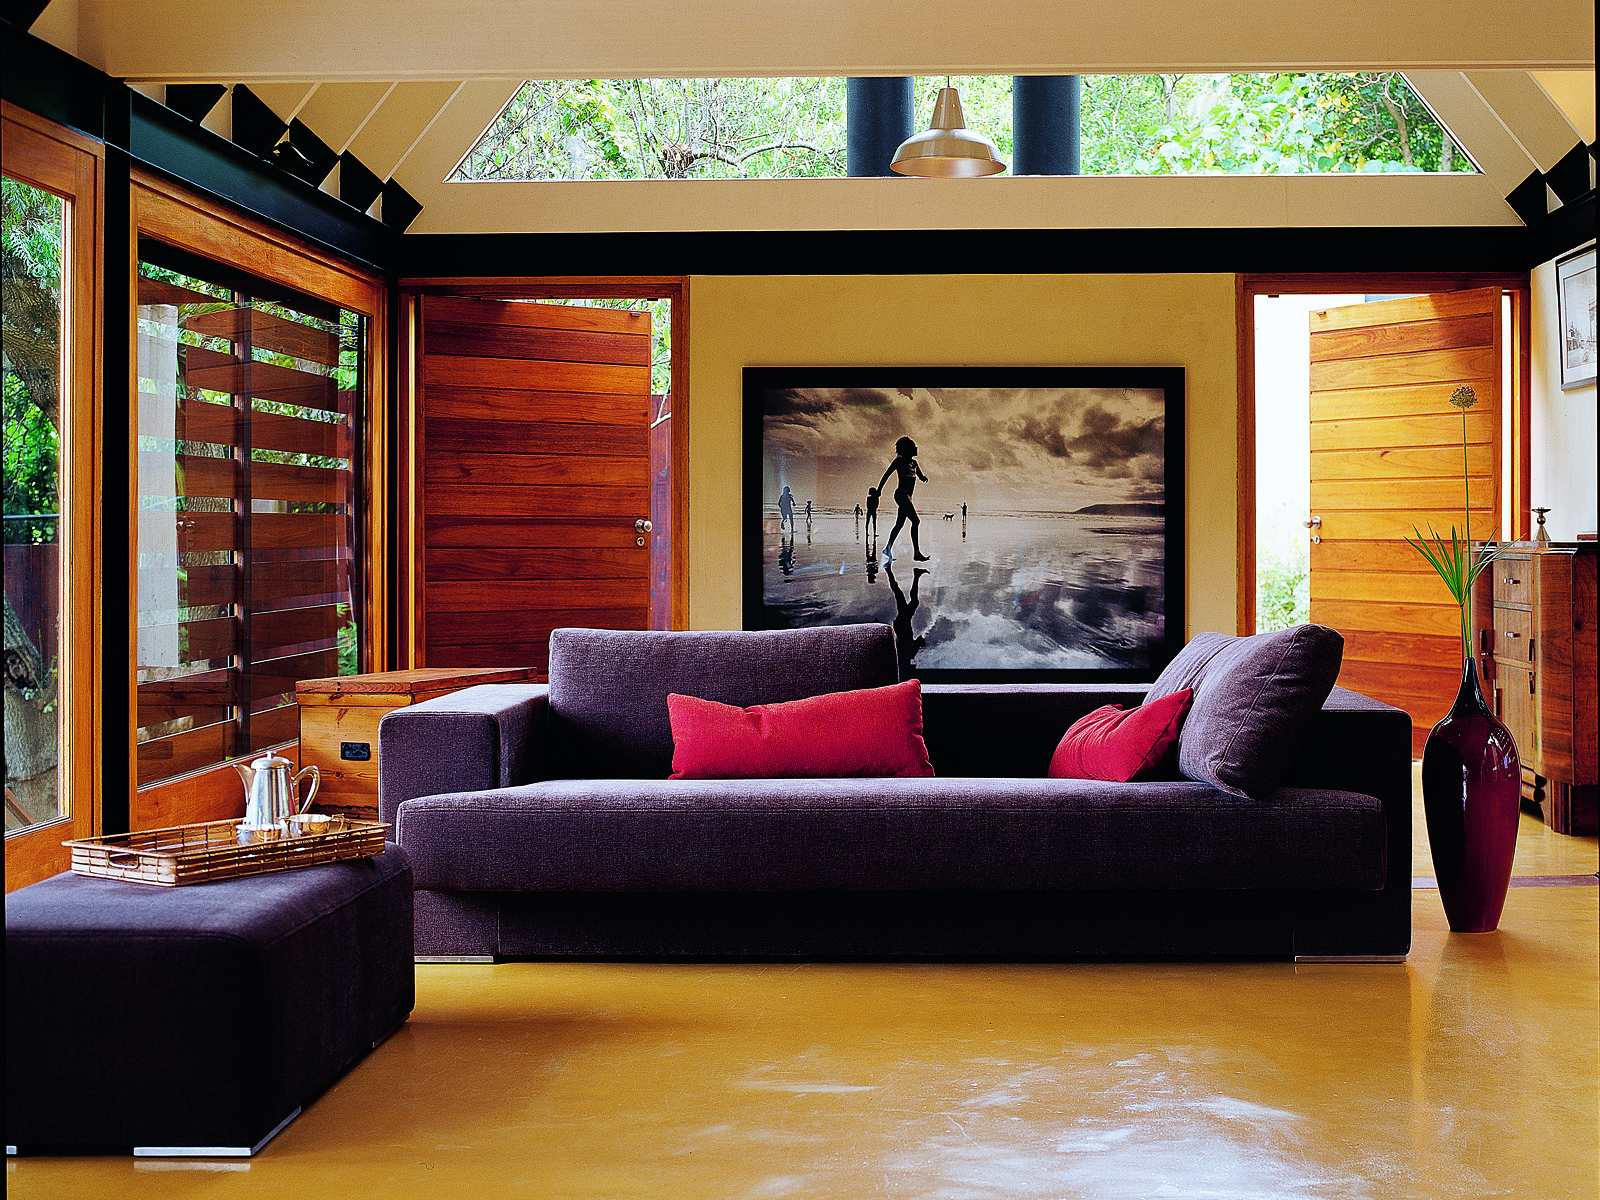 Modern luxury interiors tricks with limited budget for Living room ideas natural